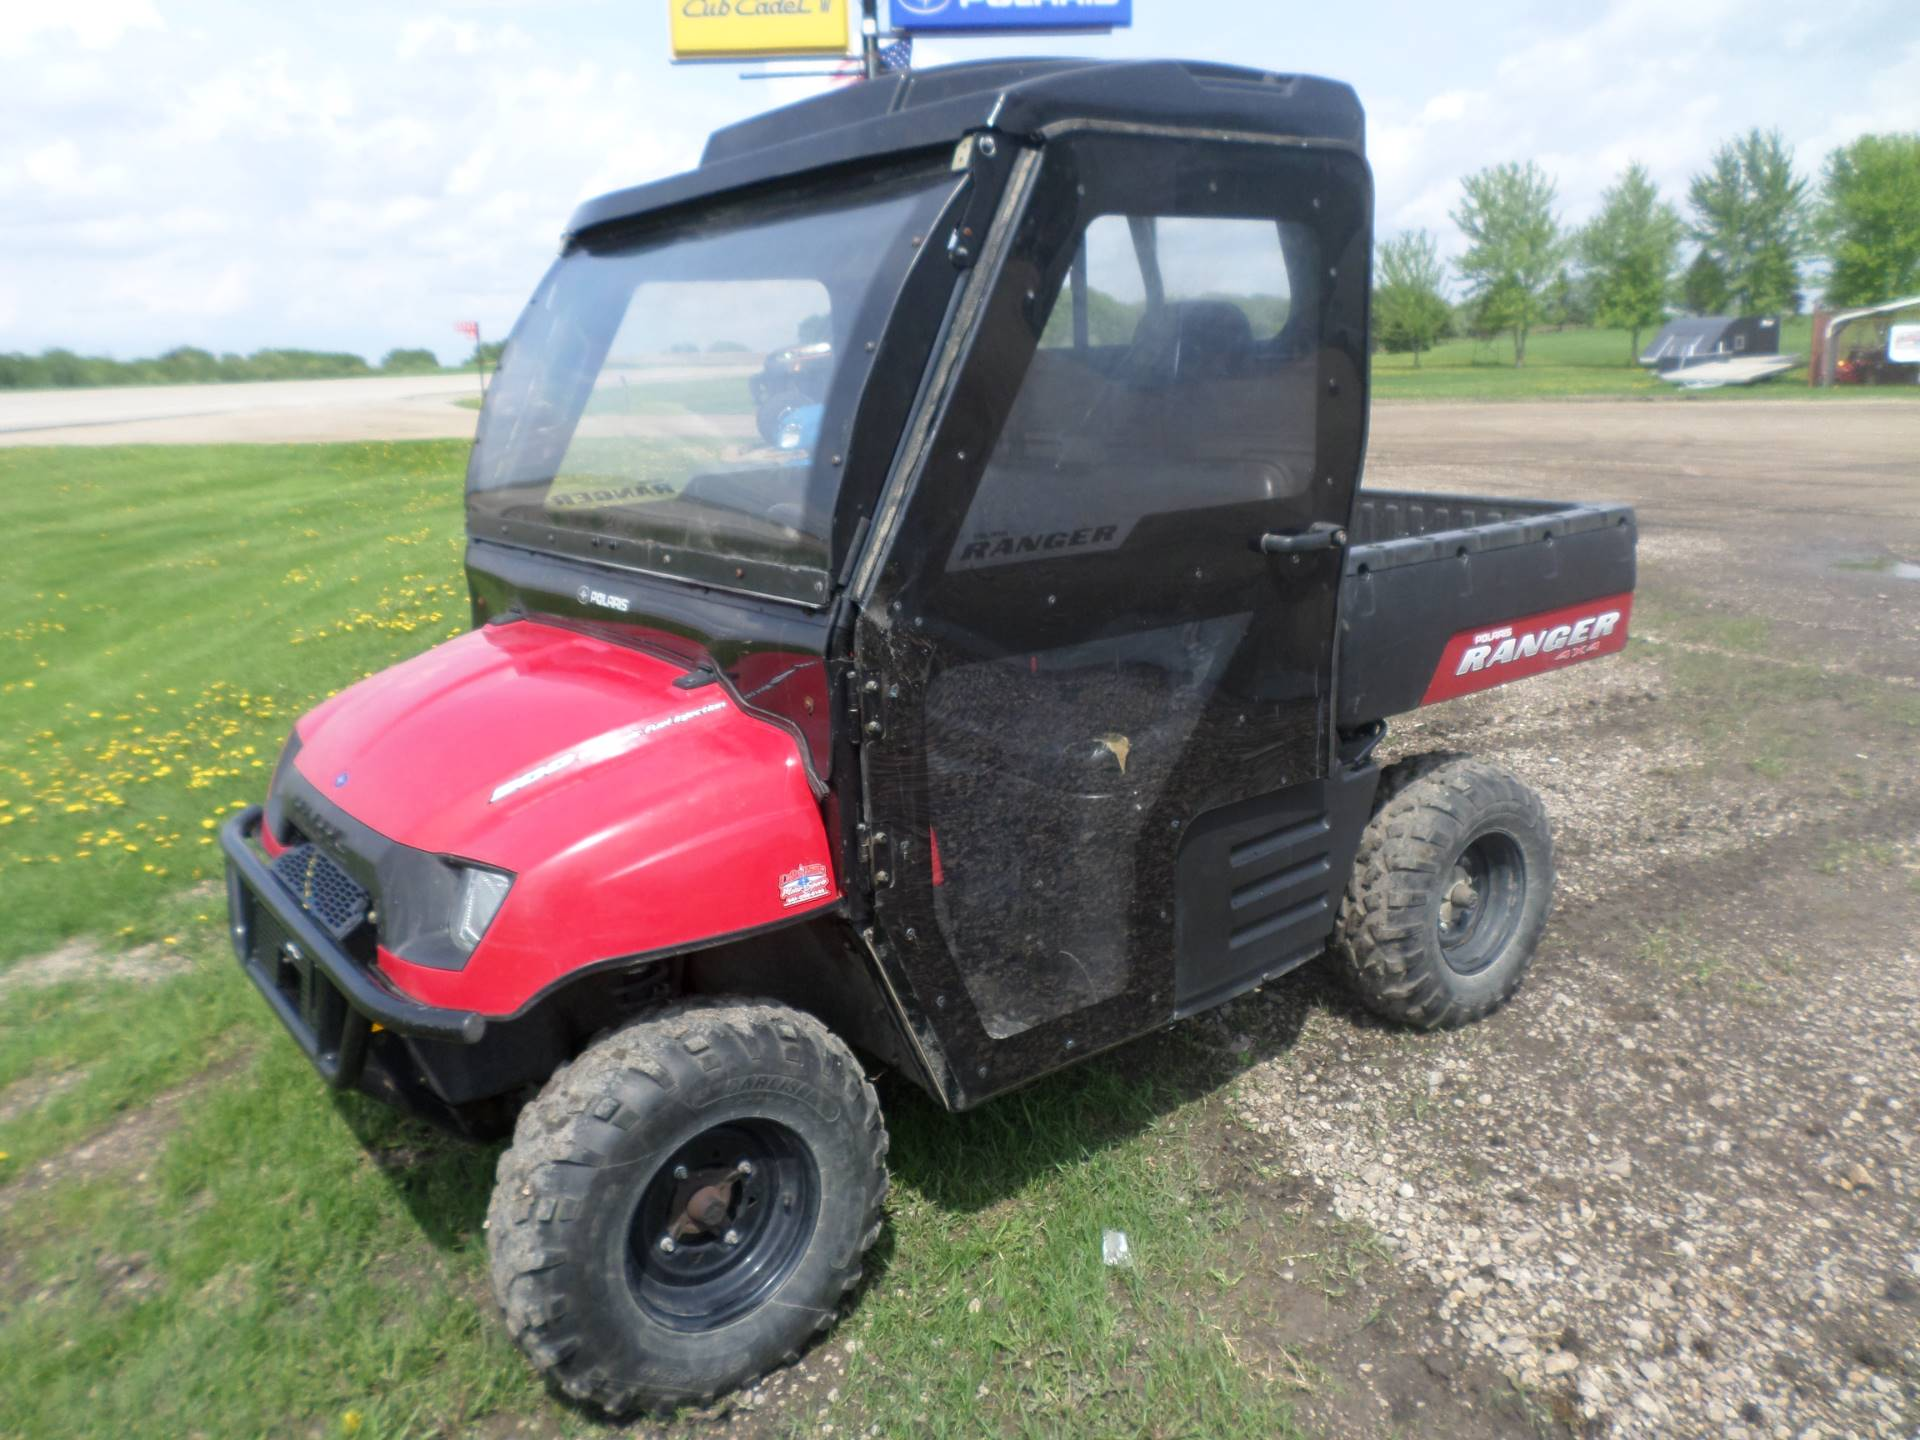 2008 Polaris Ranger 4x4 EFI for sale 1022